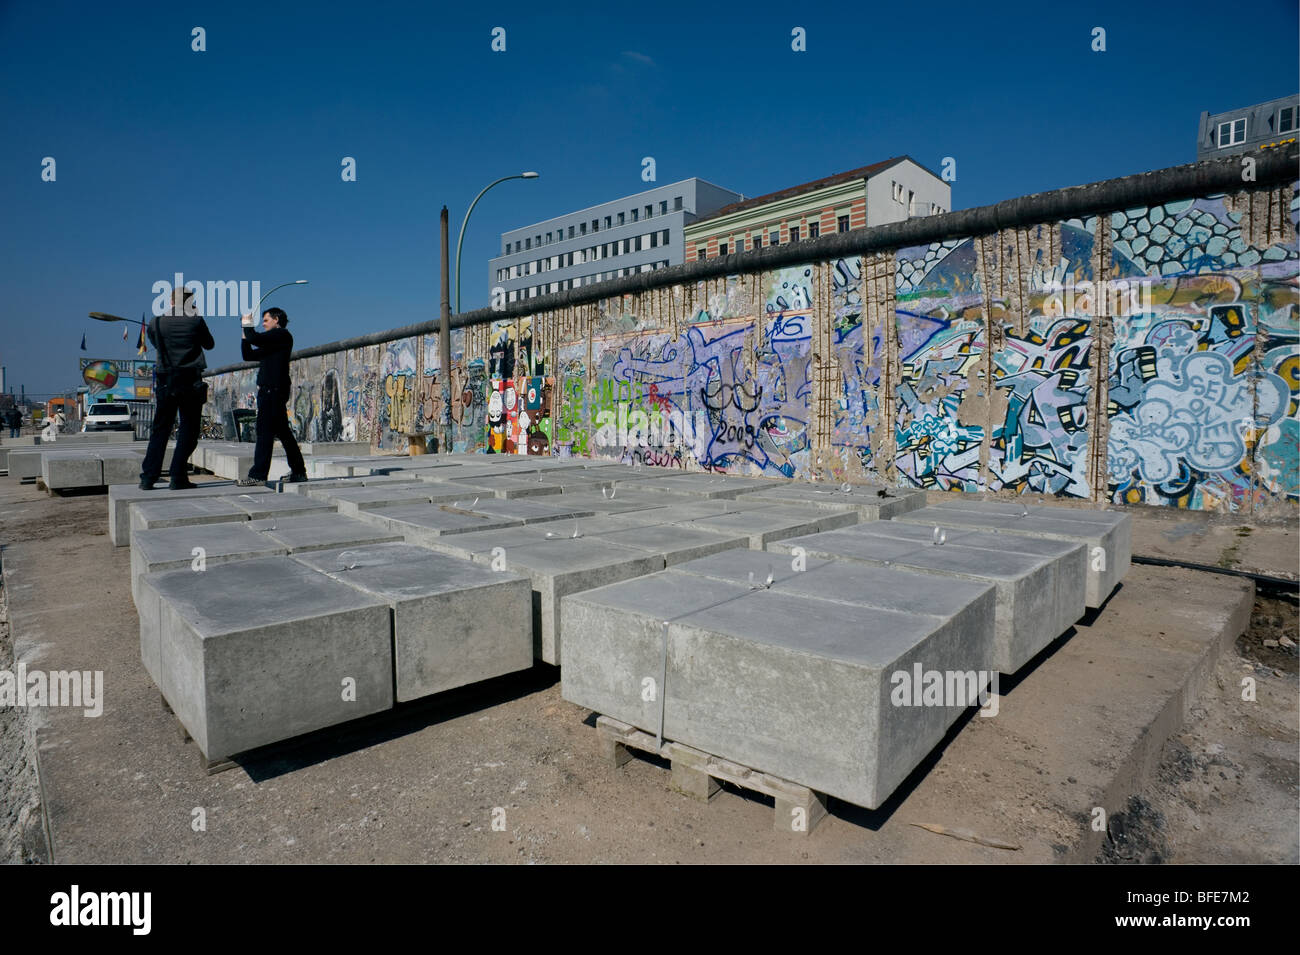 Berlin 2009,East Side Gallery,1989 DDR Germany Unified positive forward history War Cold War end East West Divide - Stock Image